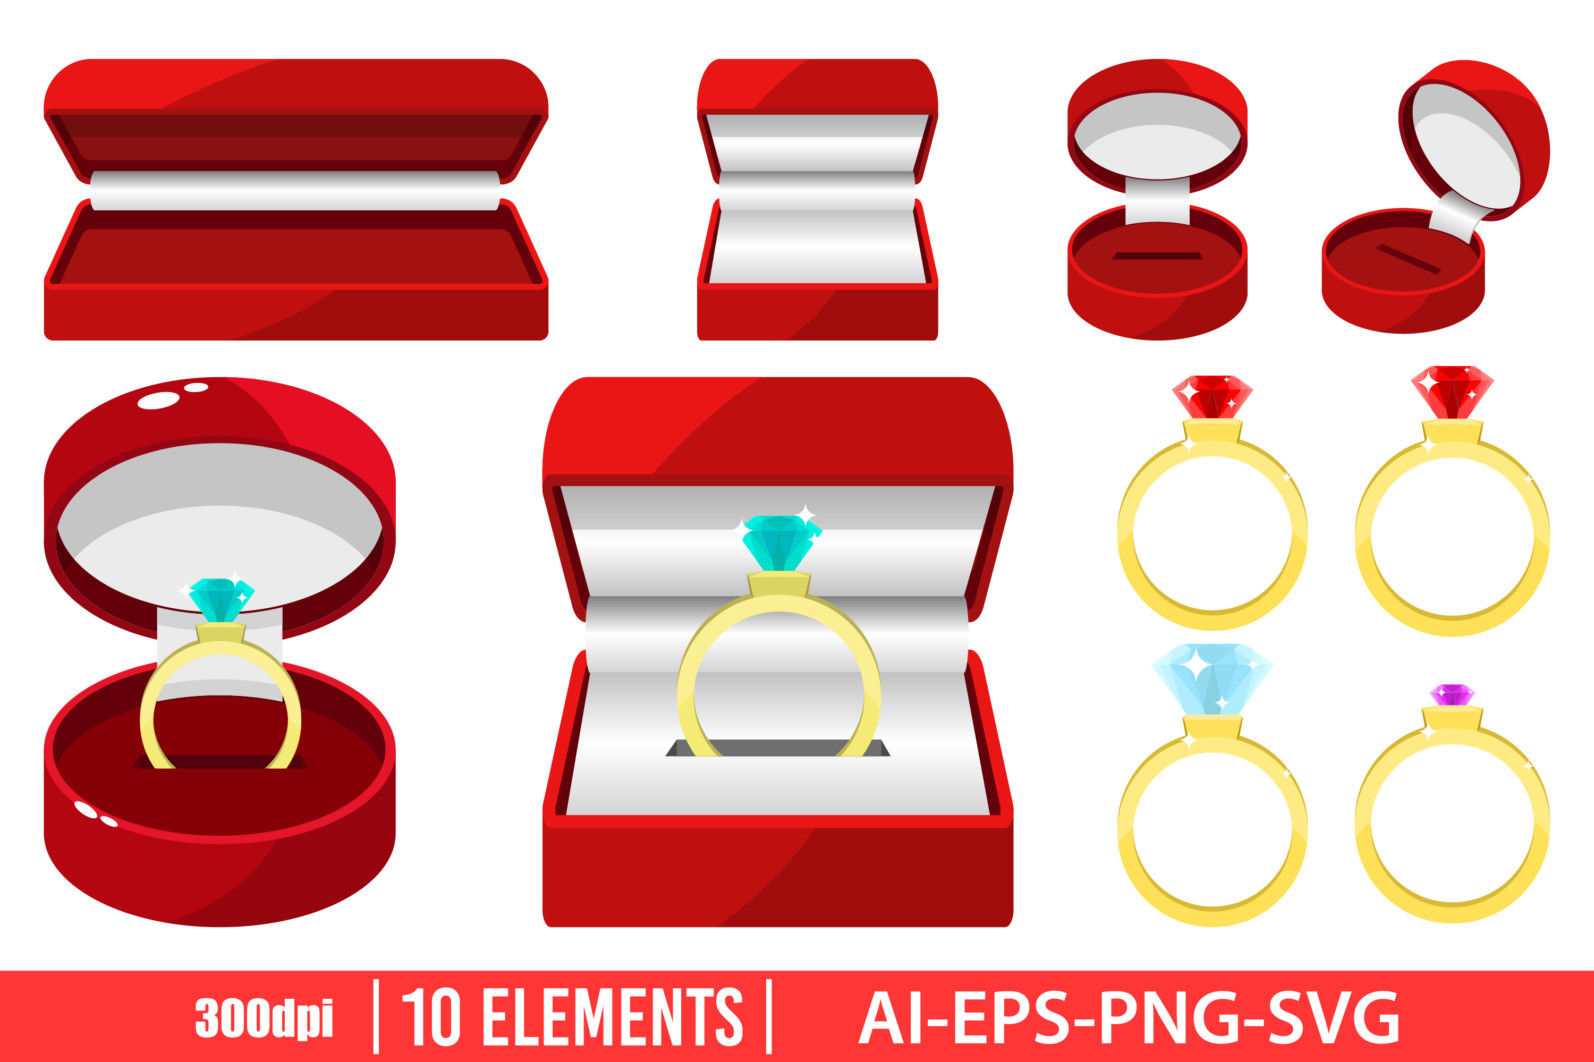 Engagement ring clipart vector design illustration. Engagement ring set. Vector Clipart Print - ENGAGEMENT RING1 scaled -